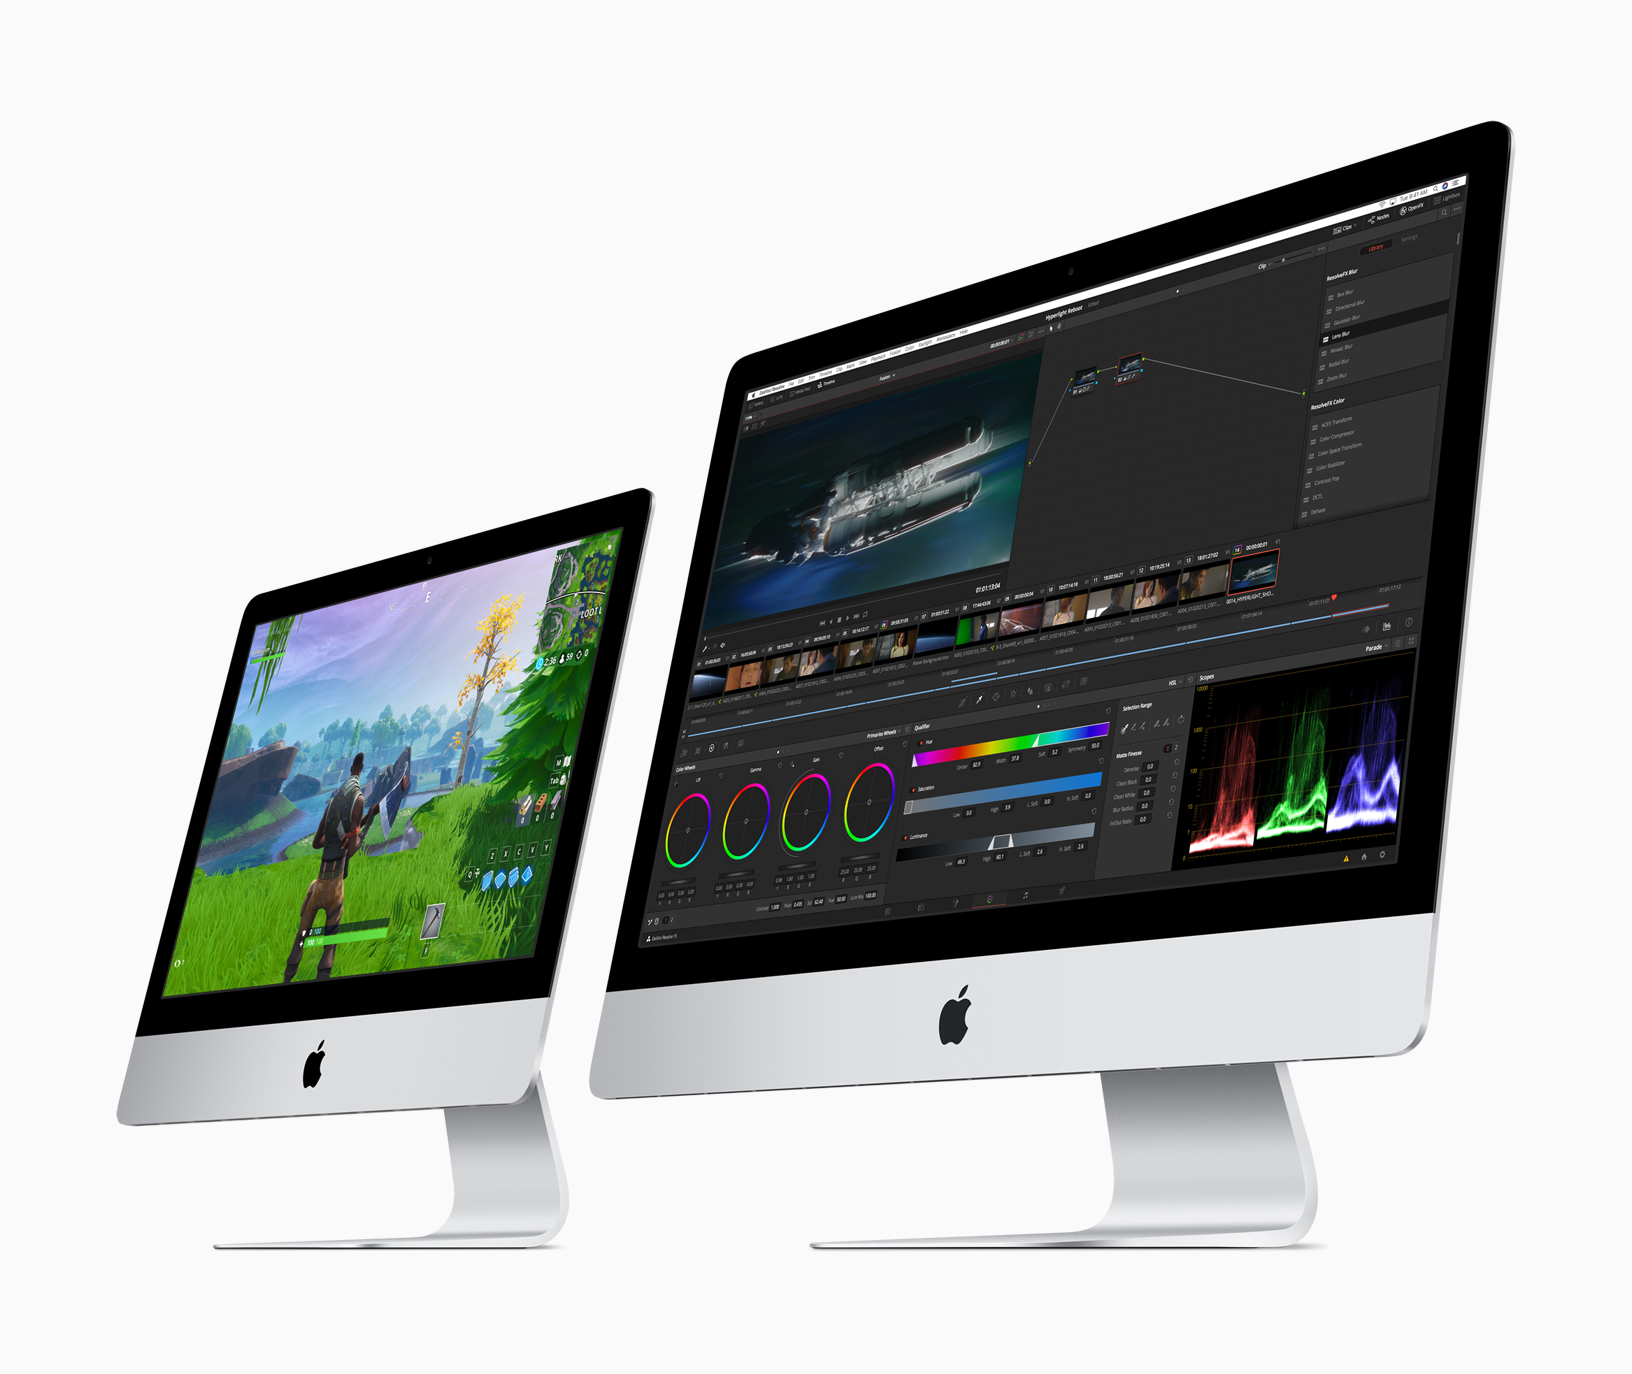 New iMac 2019 release performance